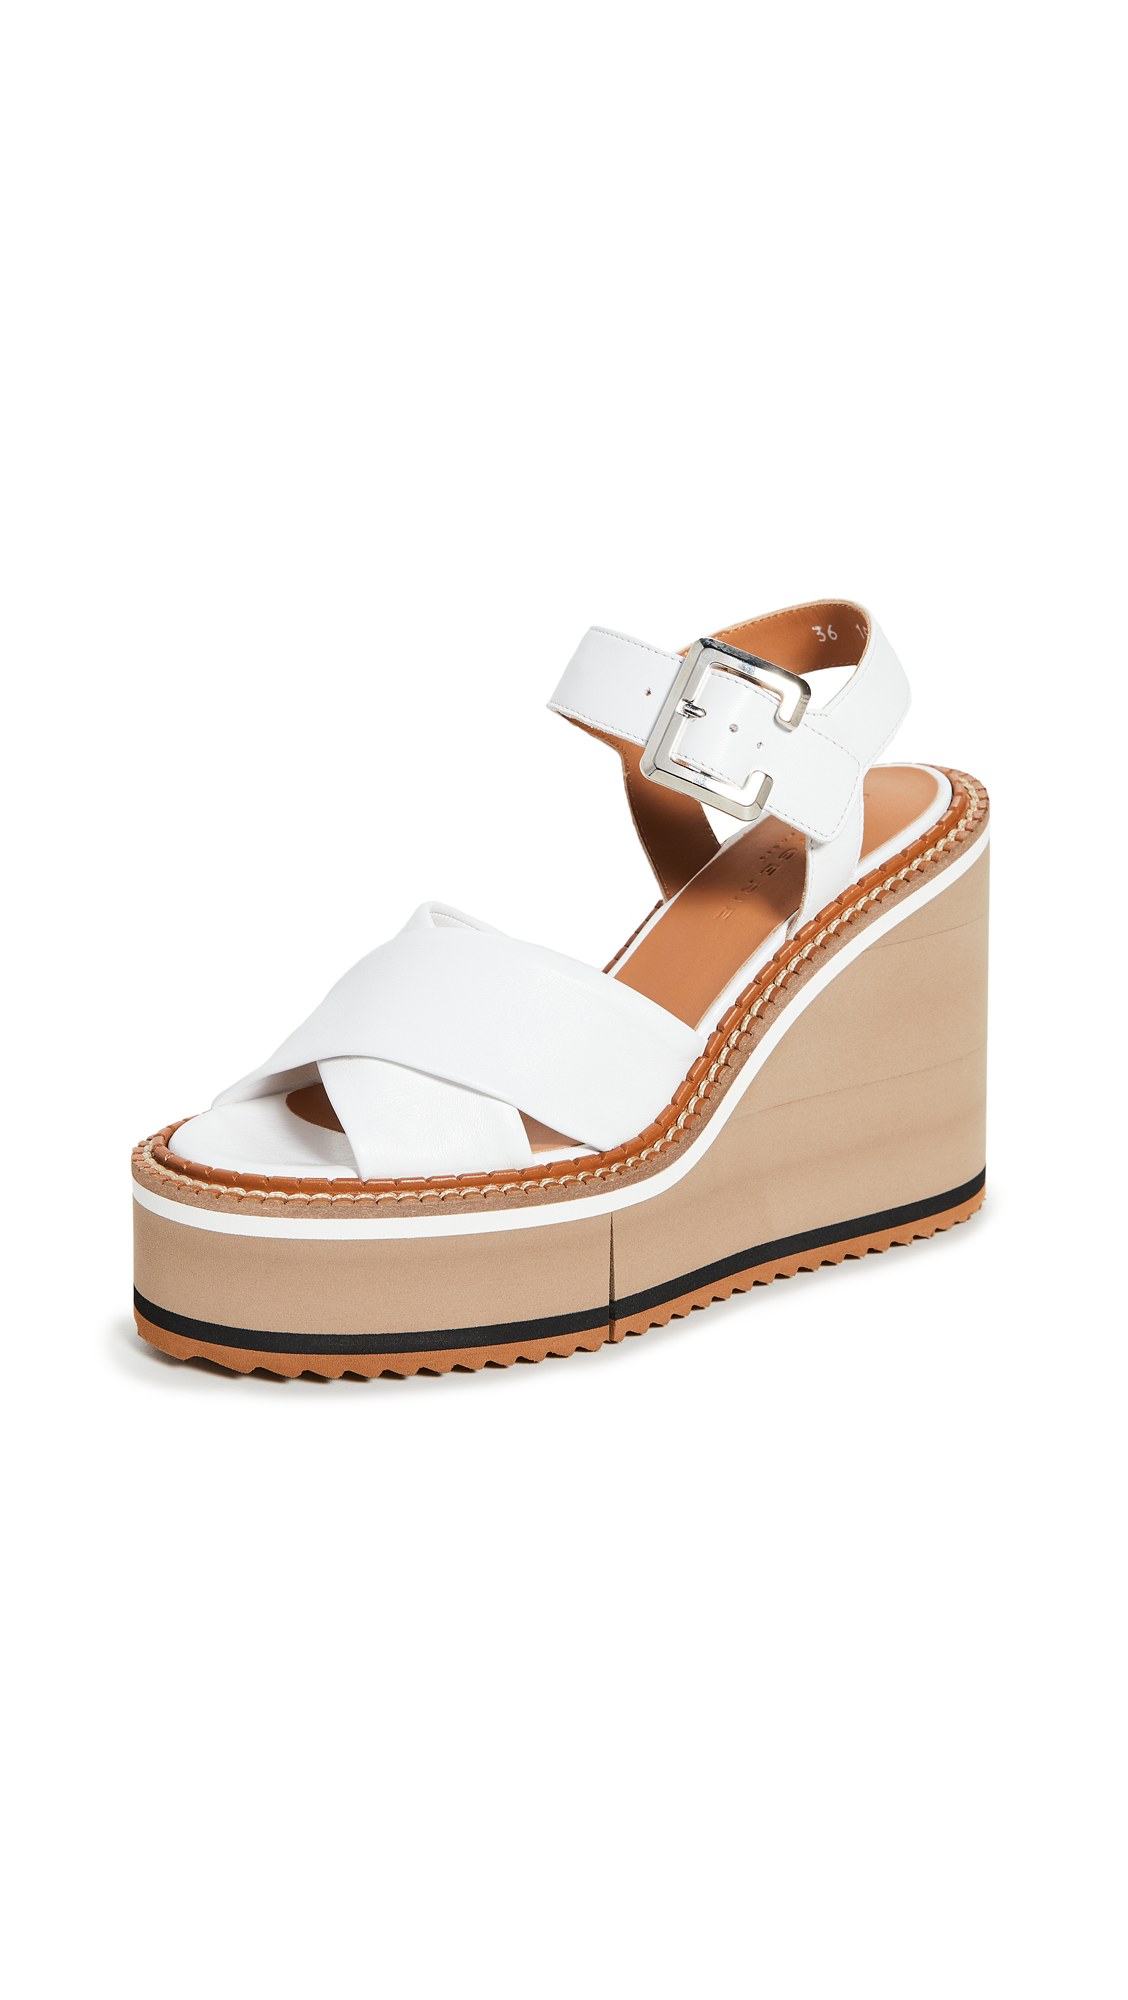 Buy Clergerie Noemie Wedge Sandals online, shop Clergerie